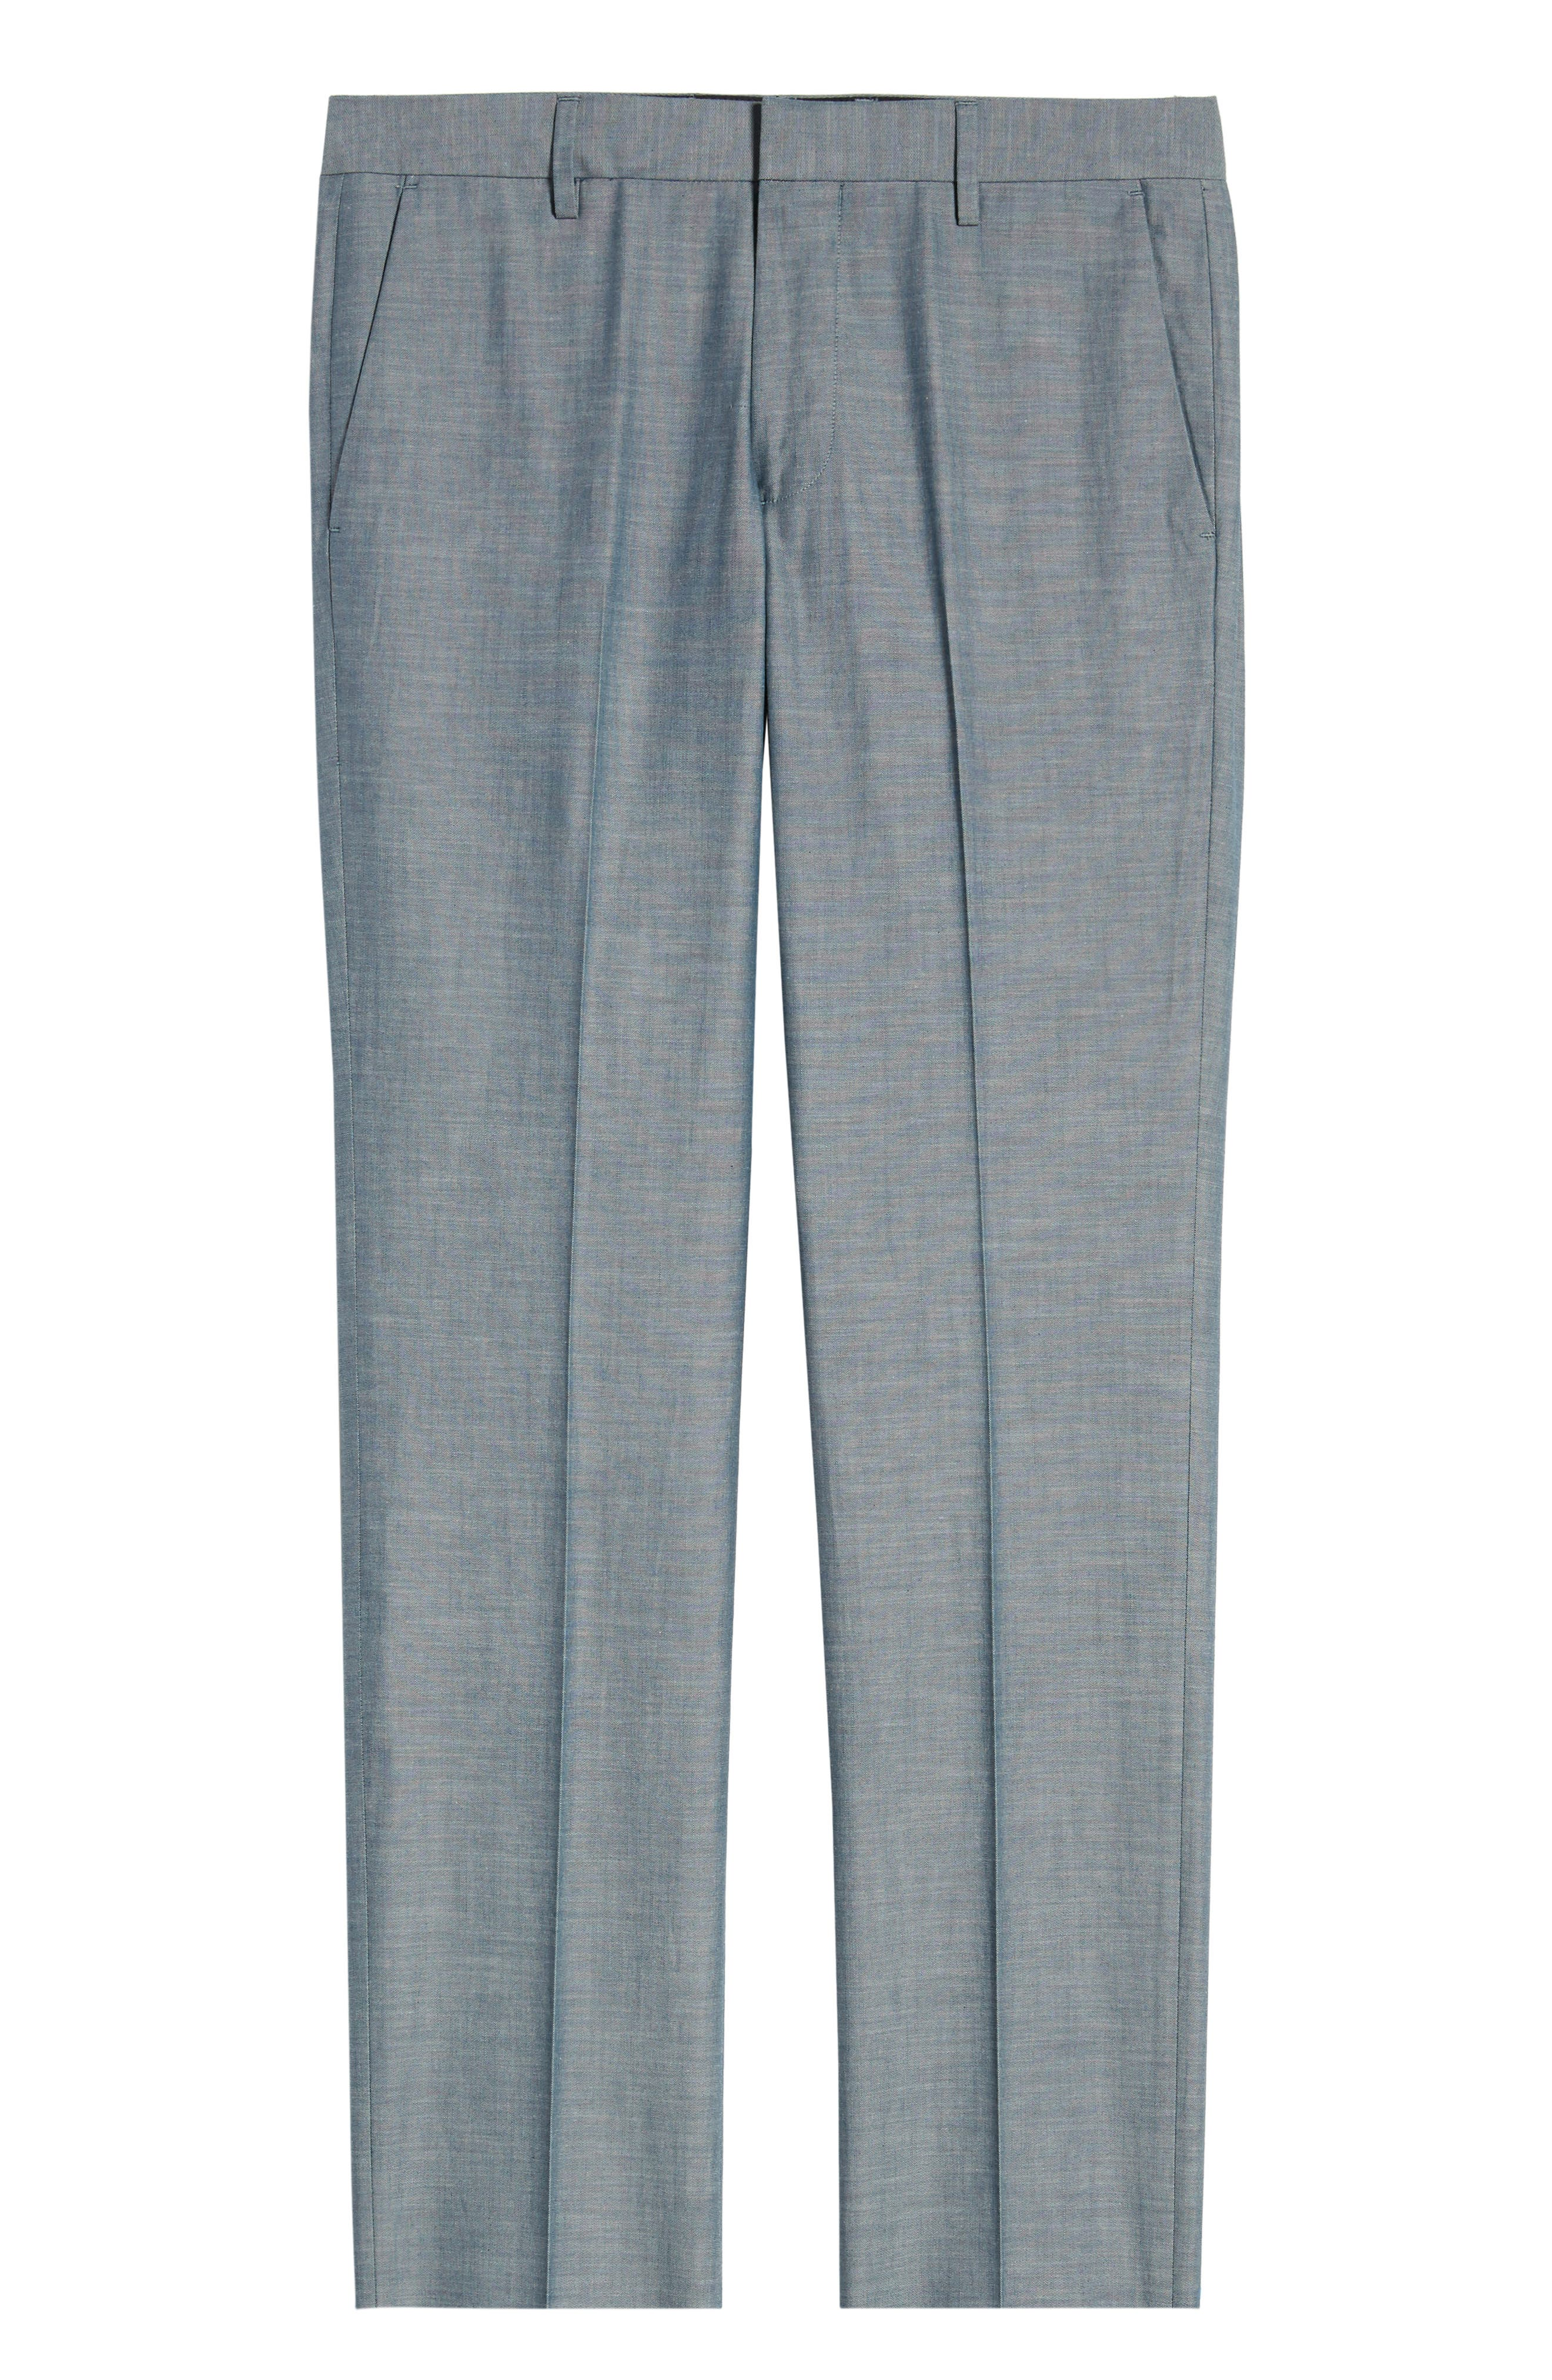 BONOBOS, Flat Front Solid Cotton Trousers, Alternate thumbnail 3, color, SOLID BLUE